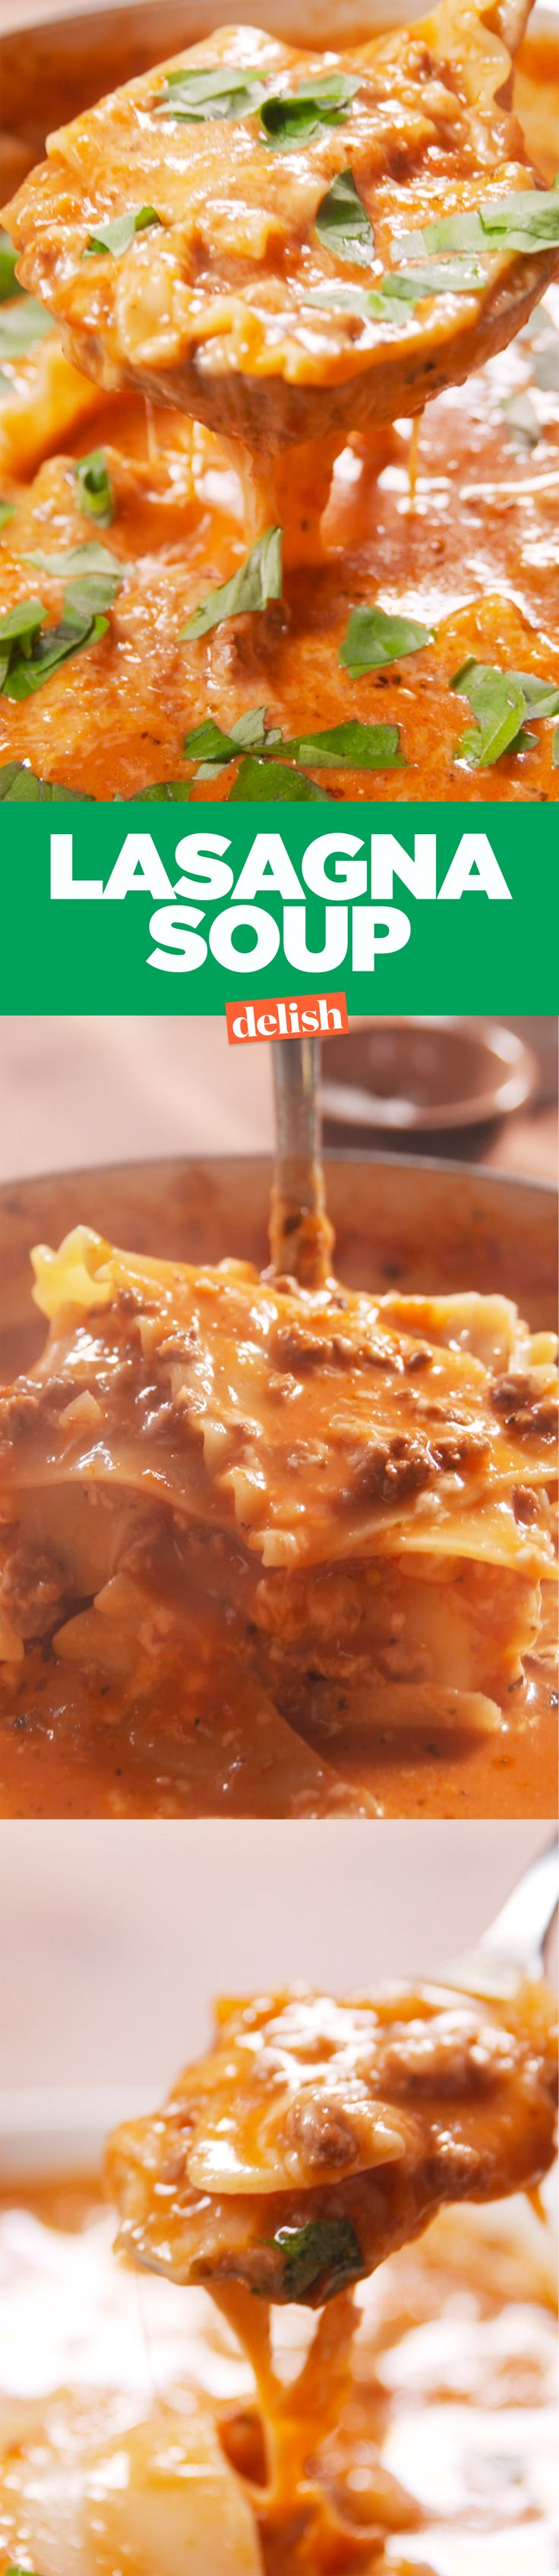 Lasagna soup is the most comforting soup you'll ever taste. Get the recipe on Delish.com.